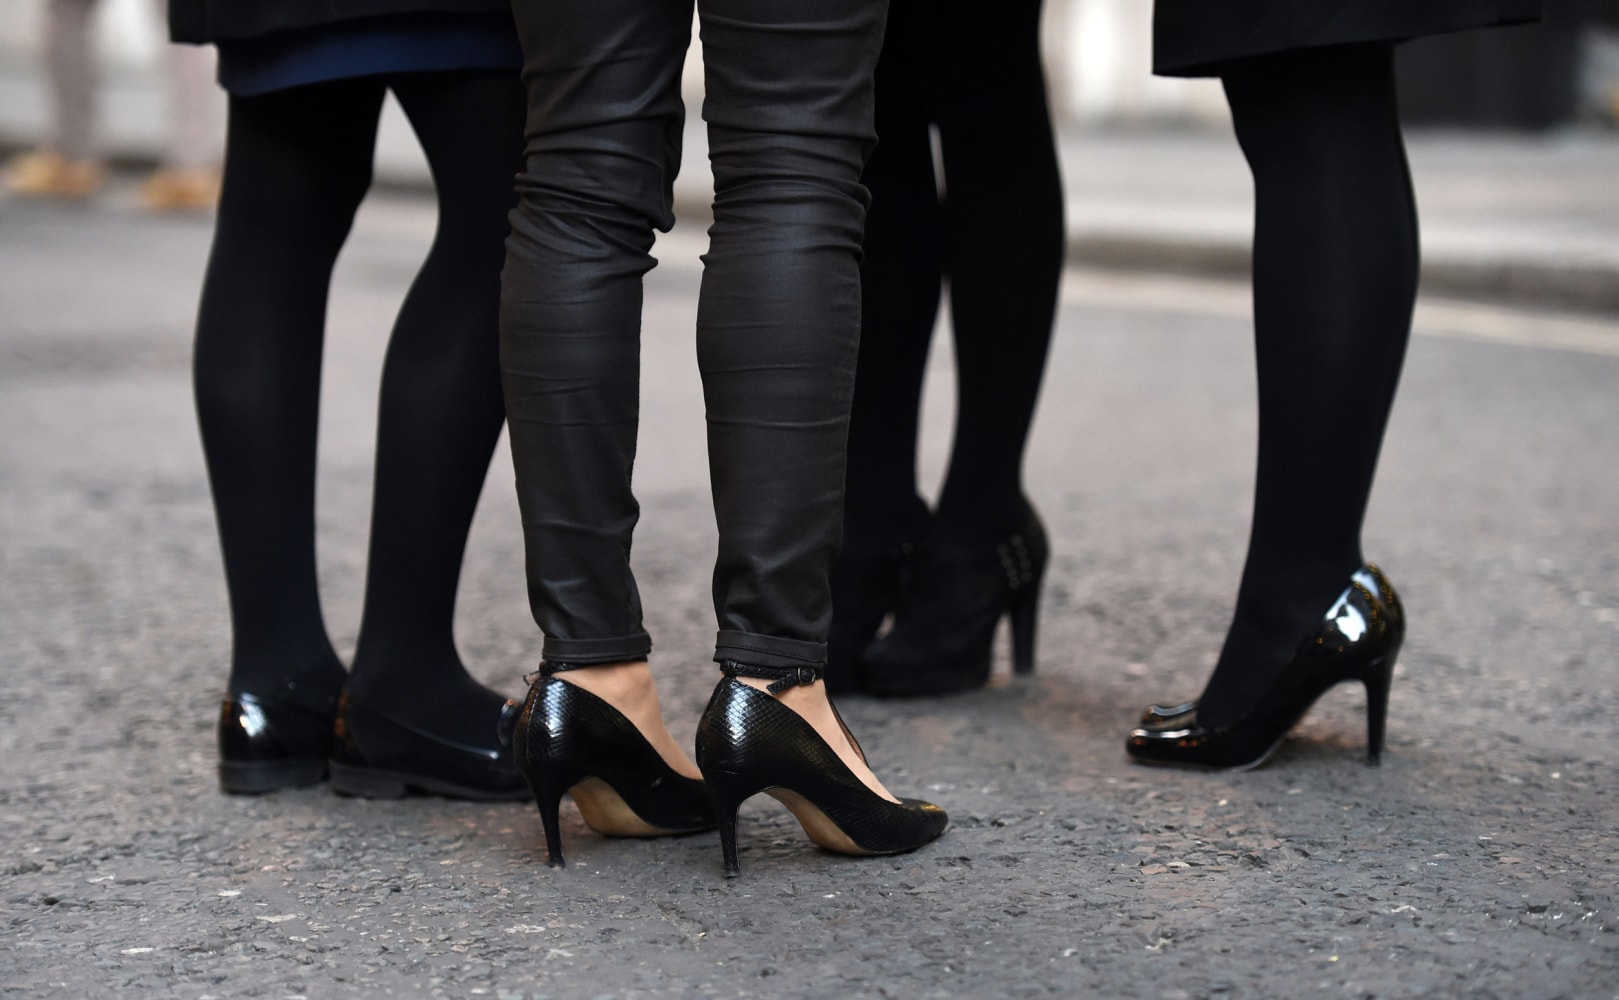 Britain Debates High Heels — Can Employers Require Them? - NBC News